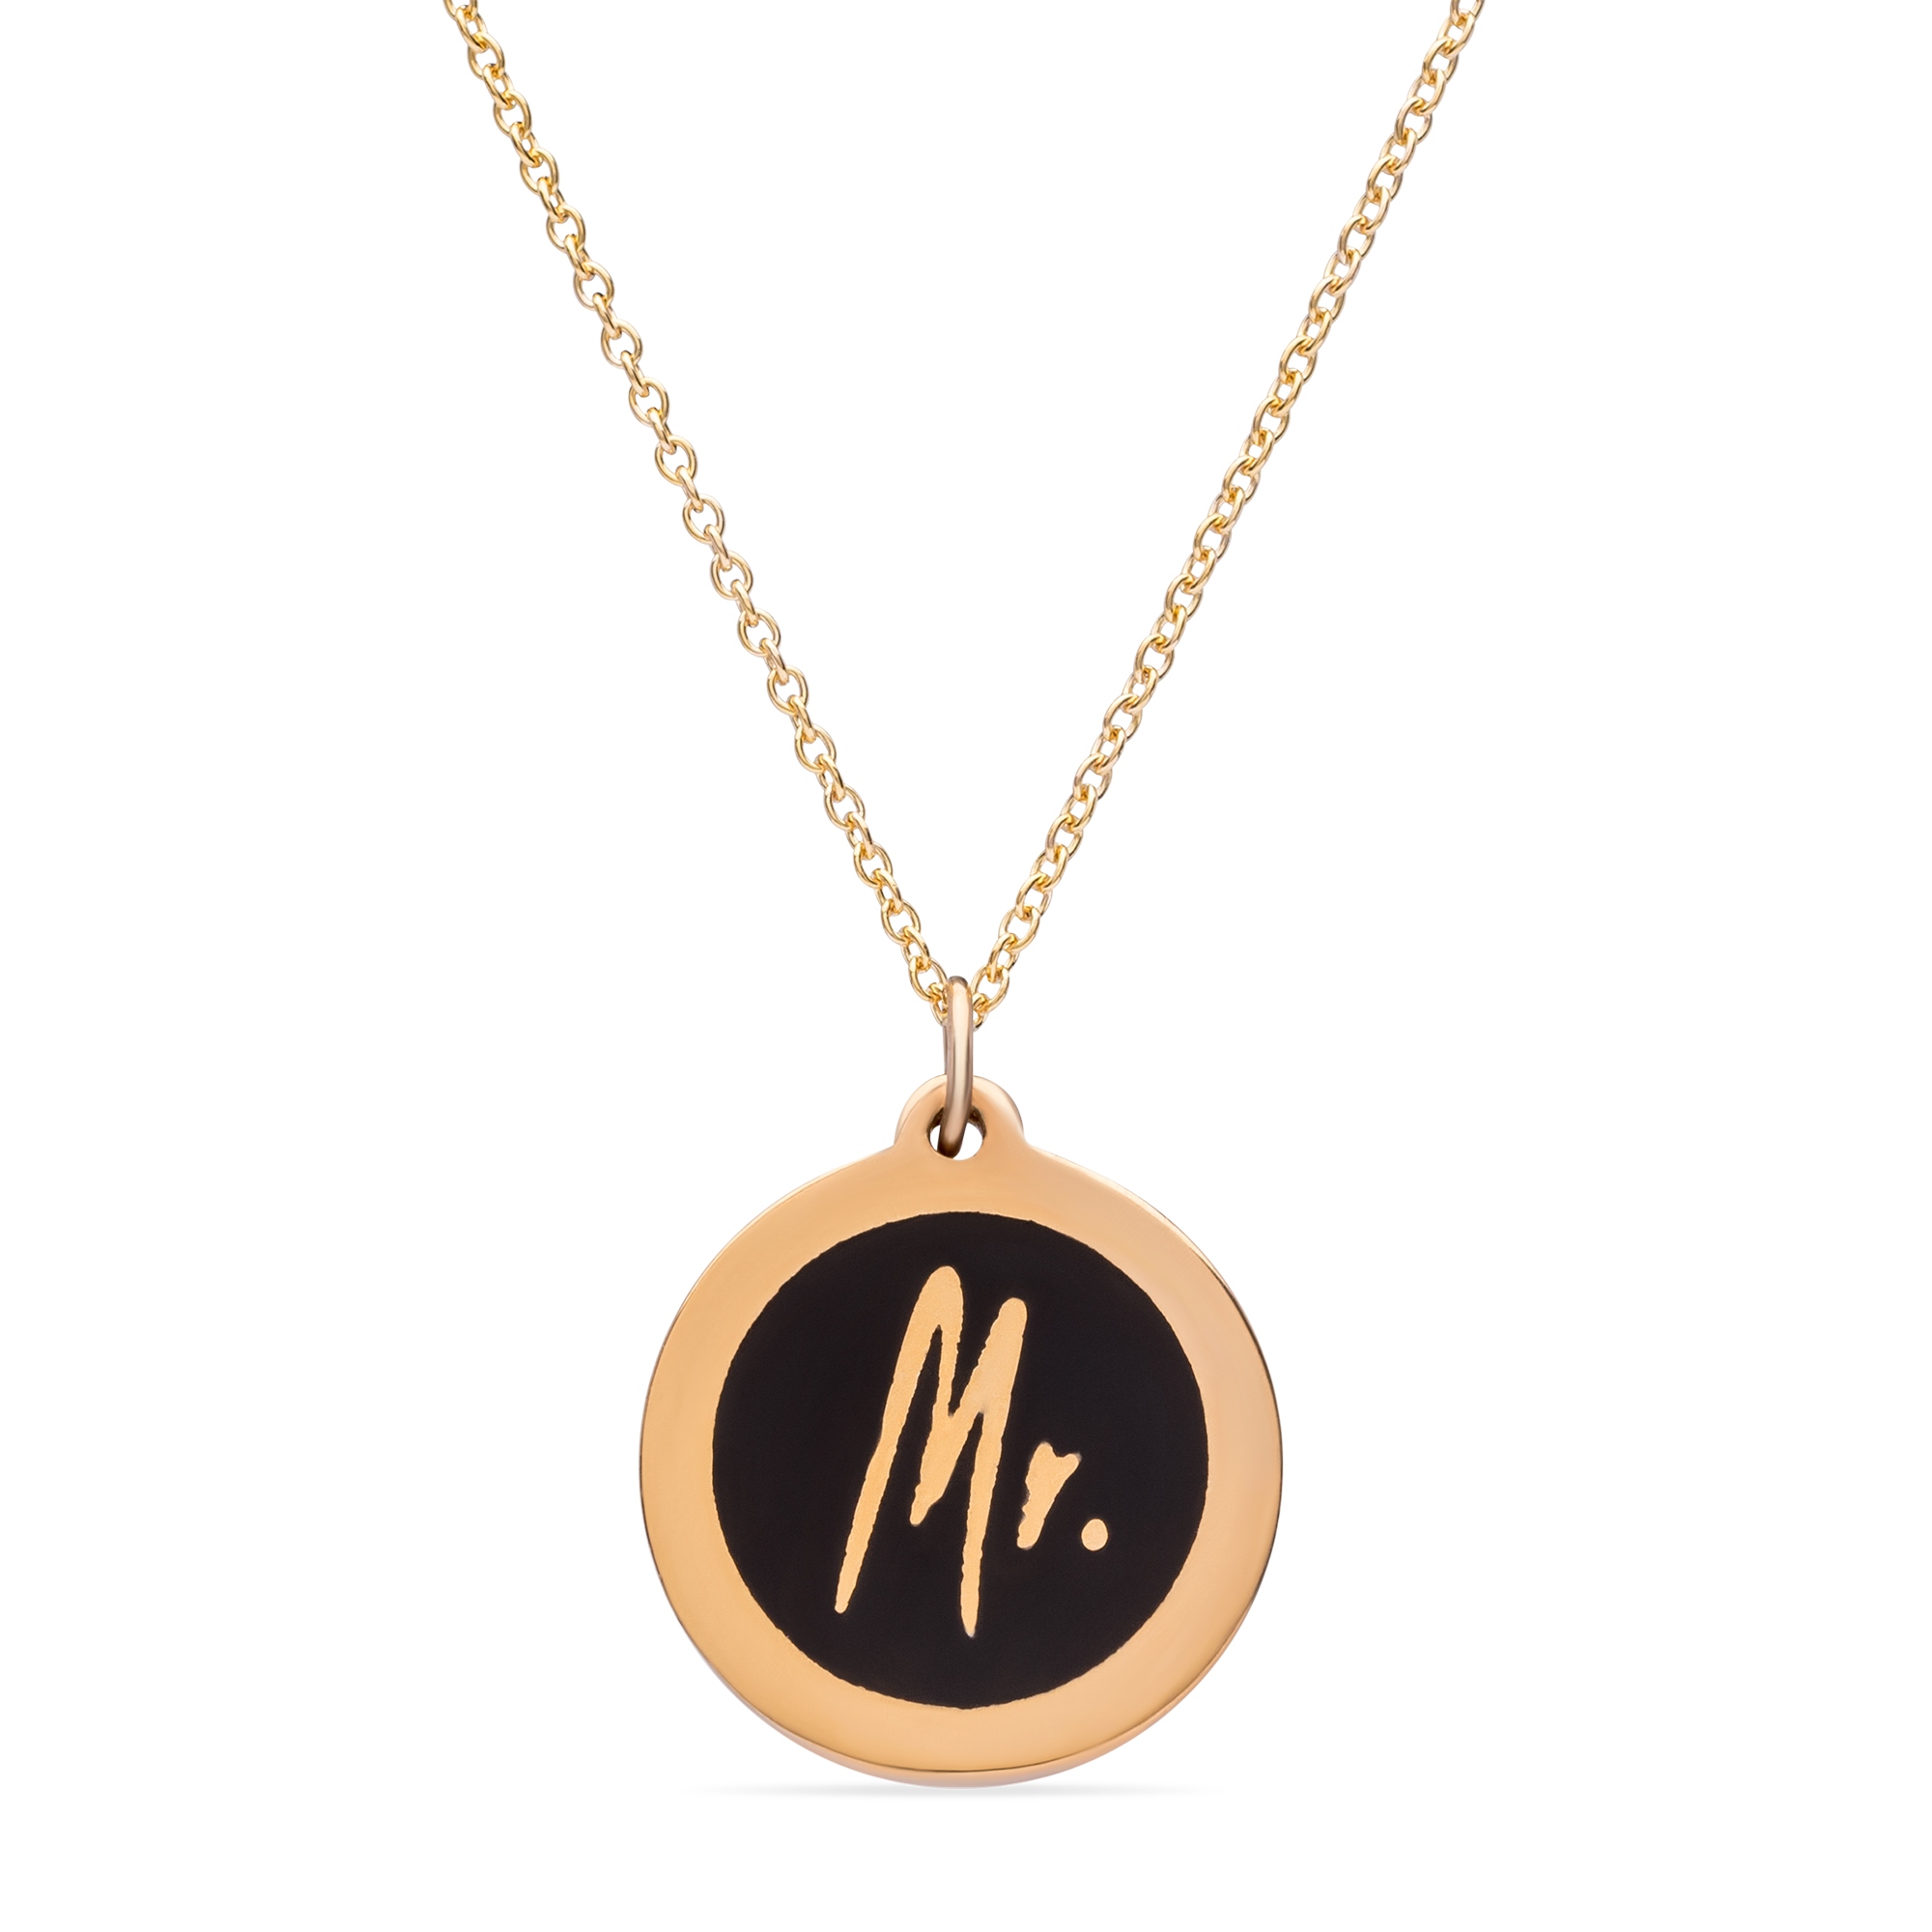 ORIGINAL MR. CHARM in 14k gold vermeil